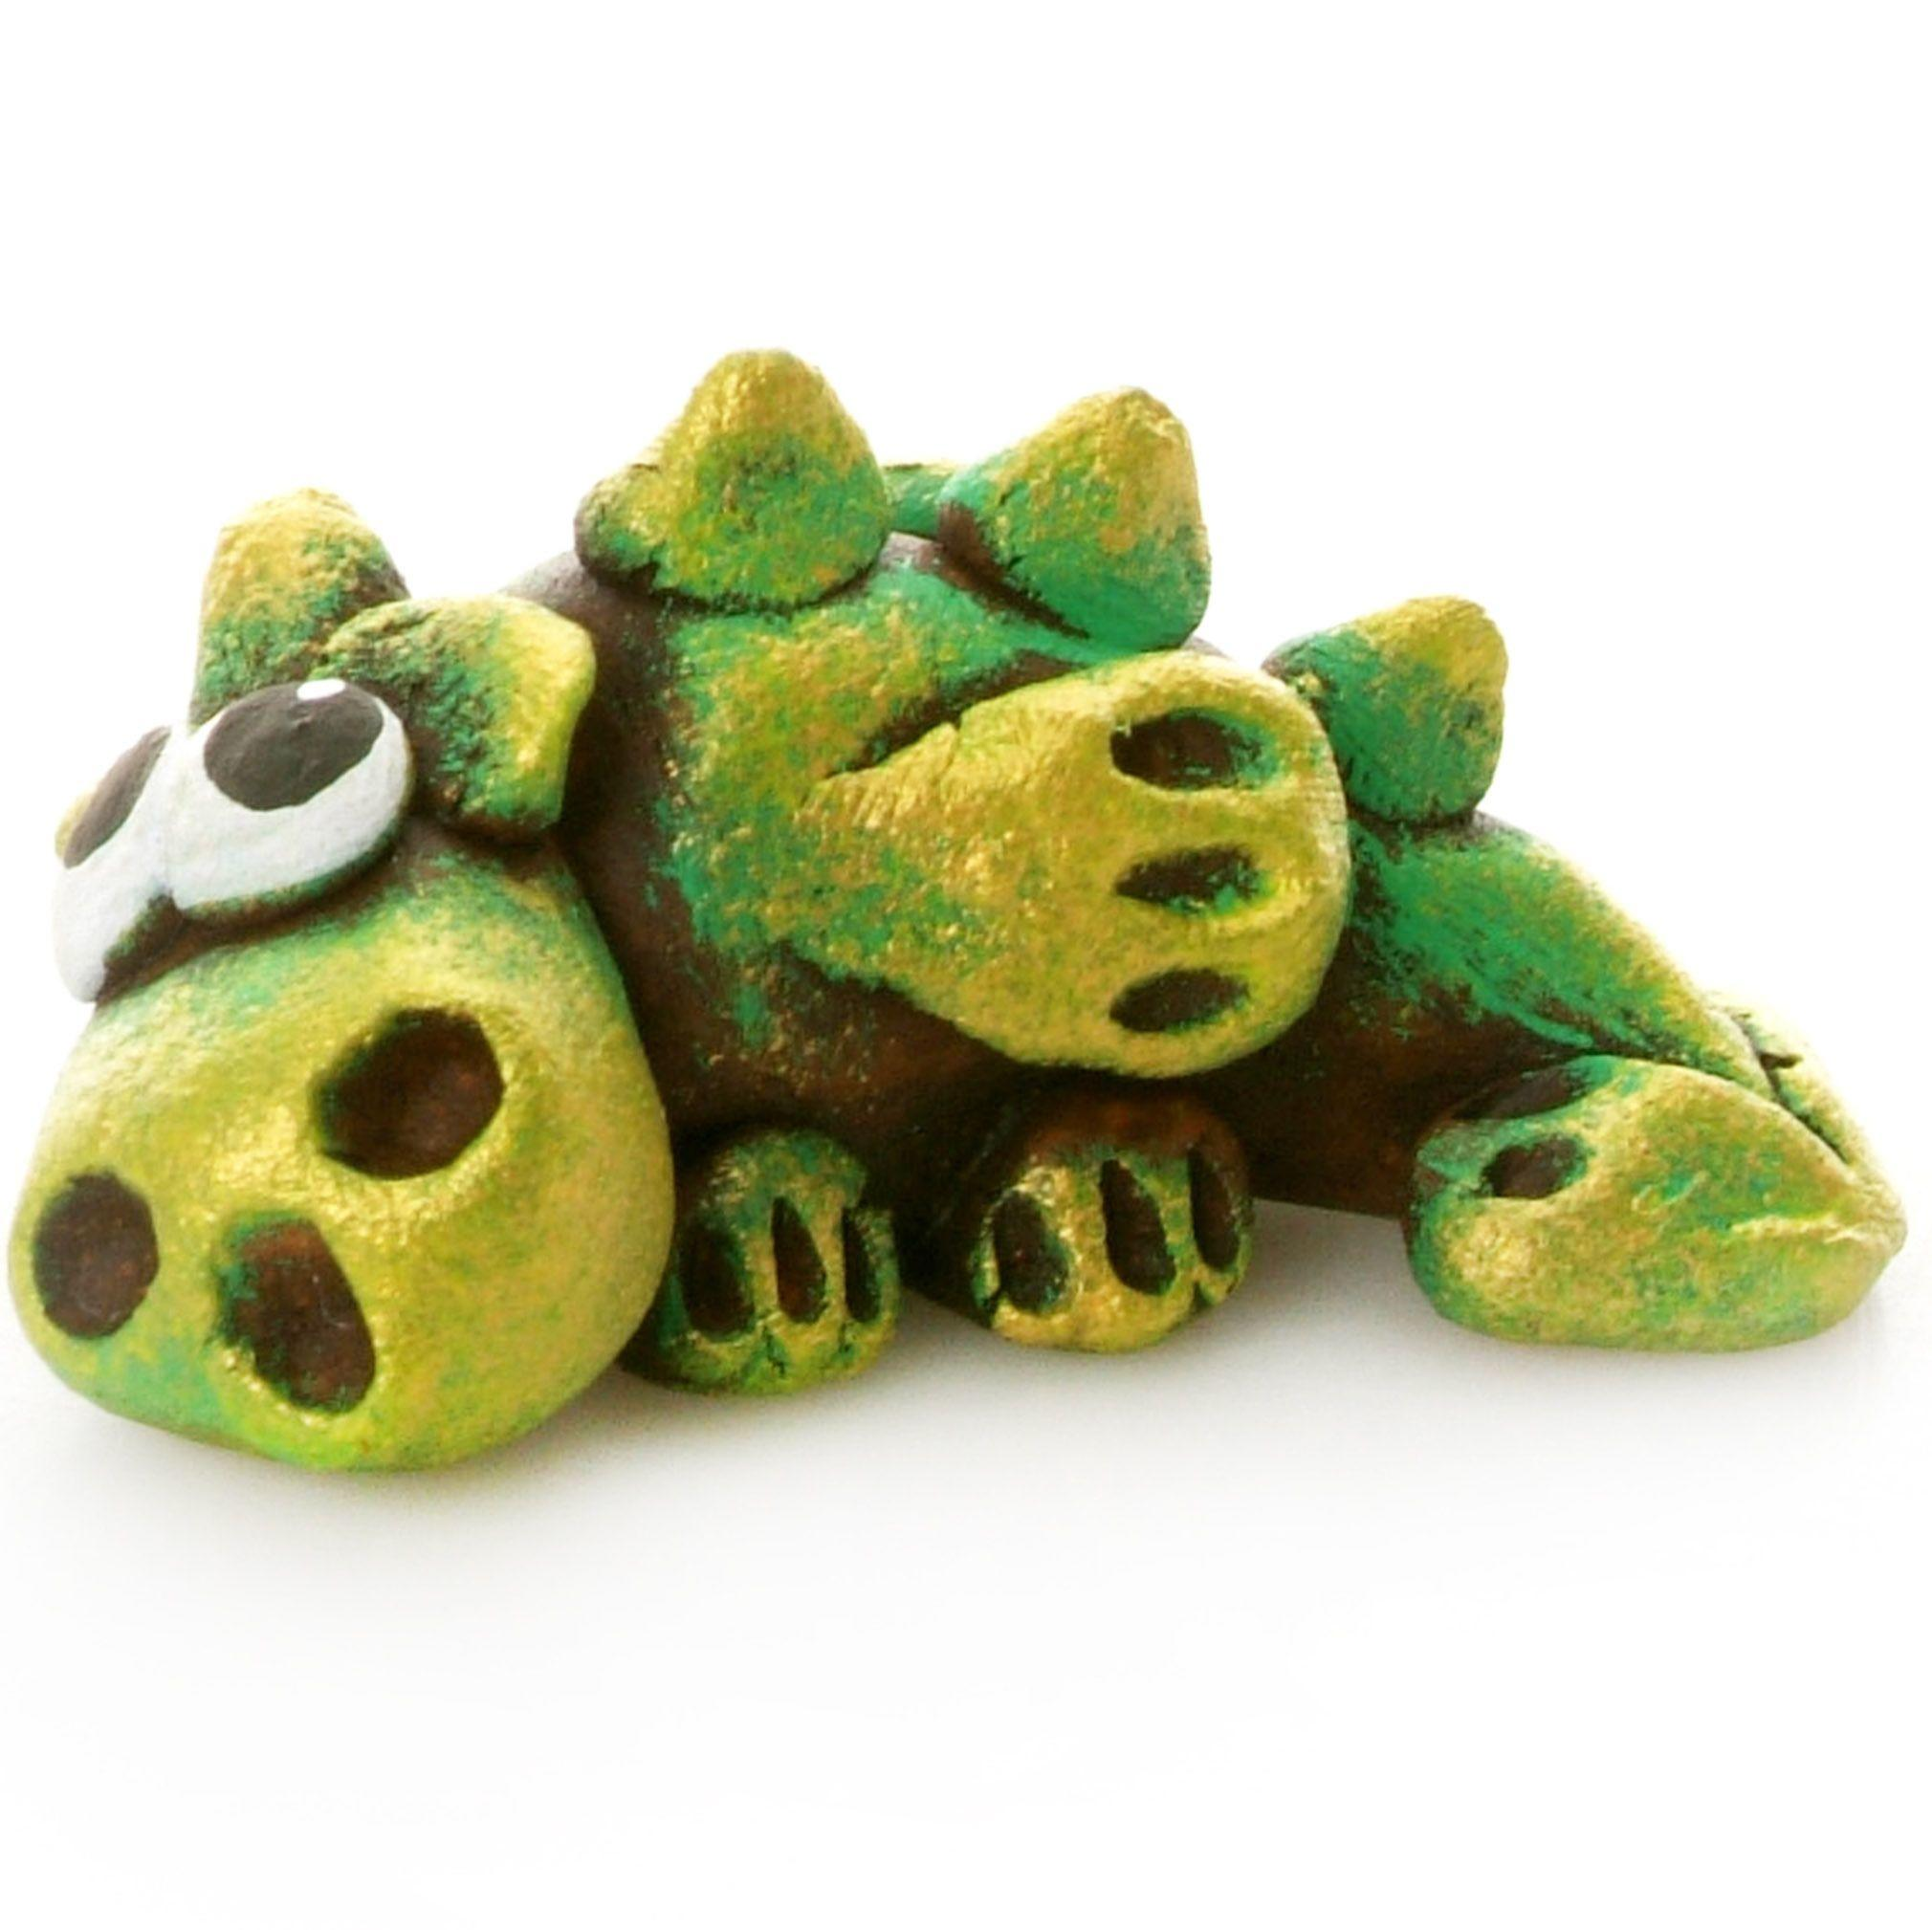 Pet in a Box | Ceramic Animal Gift for Kids | Green Dragon